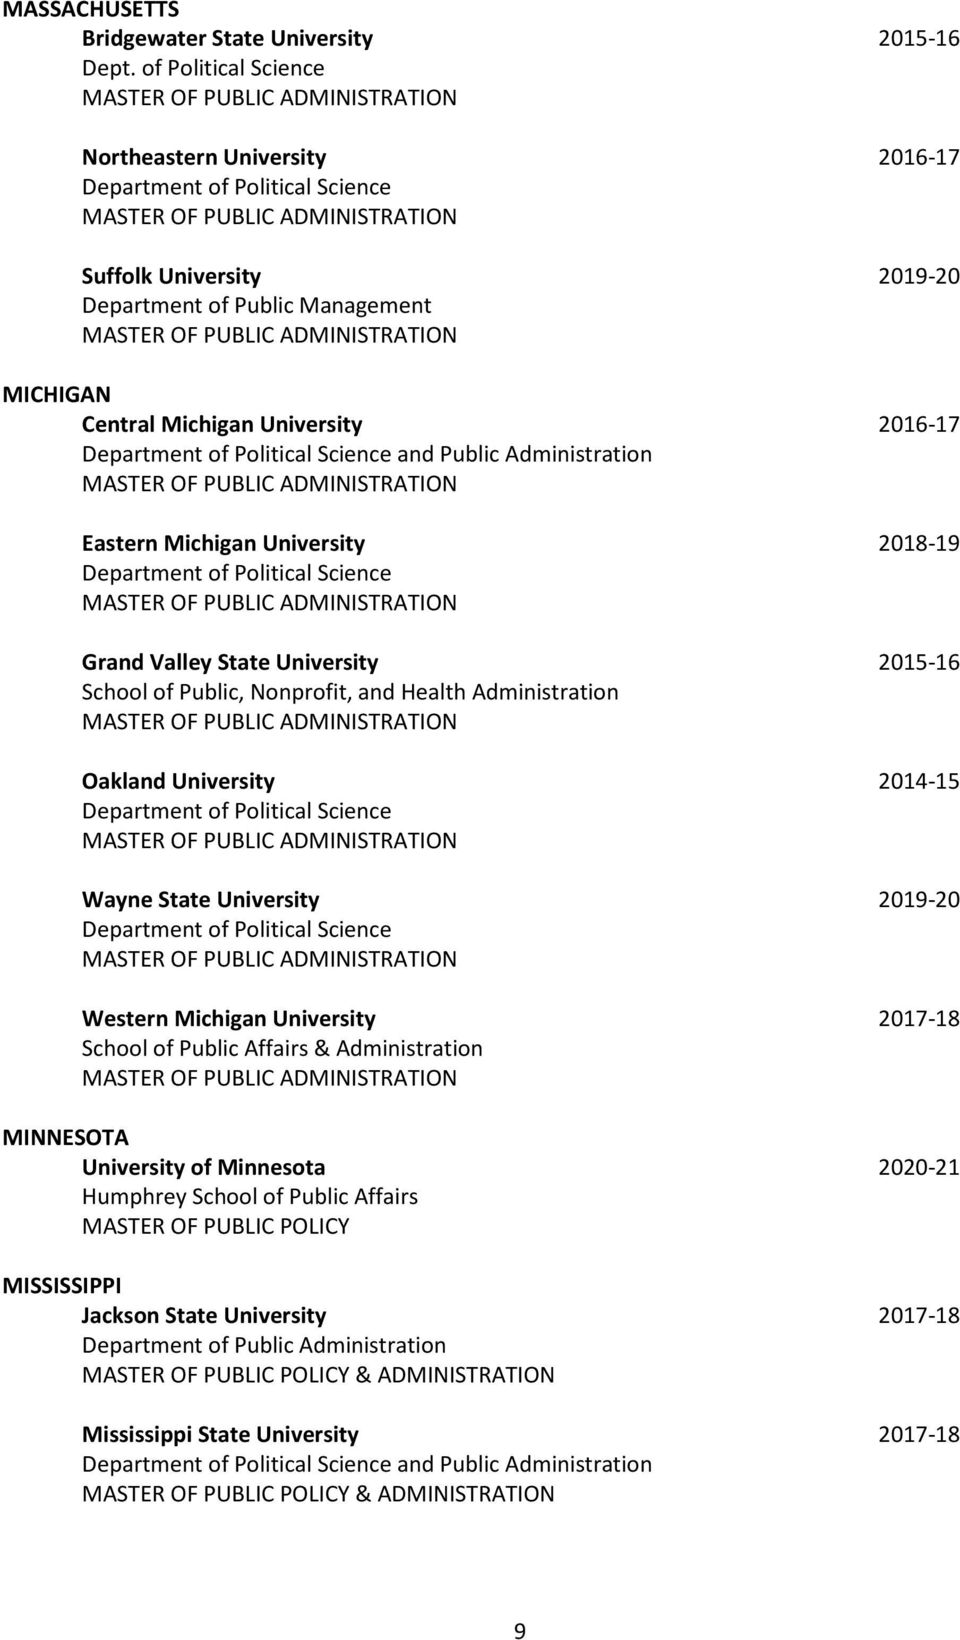 Michigan University 2018-19 Grand Valley State University 2015-16 School of Public, Nonprofit, and Health Administration Oakland University 2014-15 Wayne State University 2019-20 Western Michigan